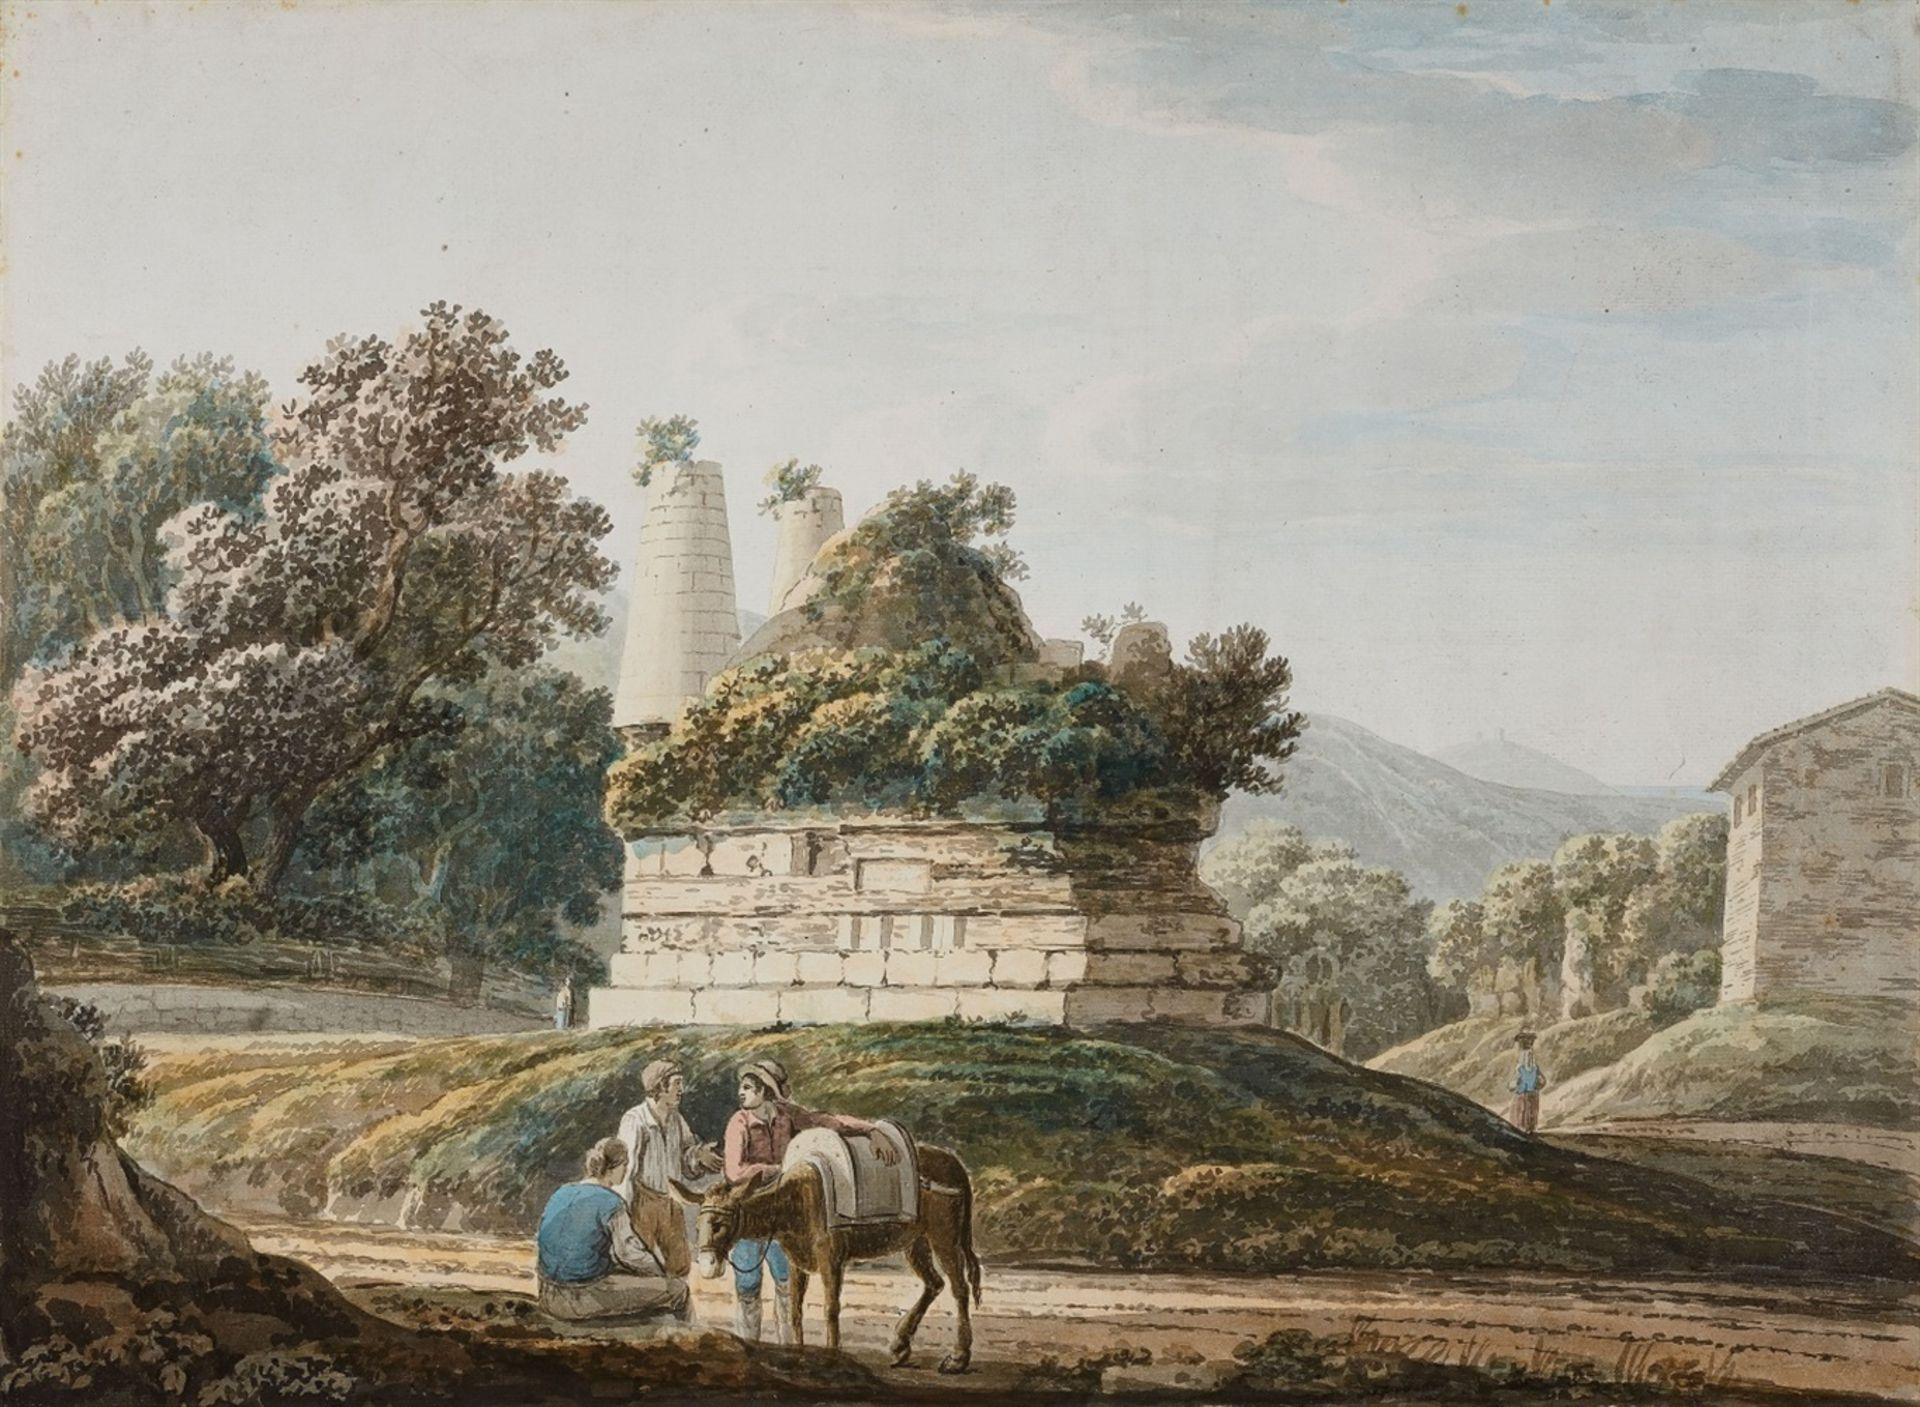 Los 2502 - Jacob MoreThe Tomb of the Horatii and Curiatii on the Via Appia near AlbanoWatercolour on paper.